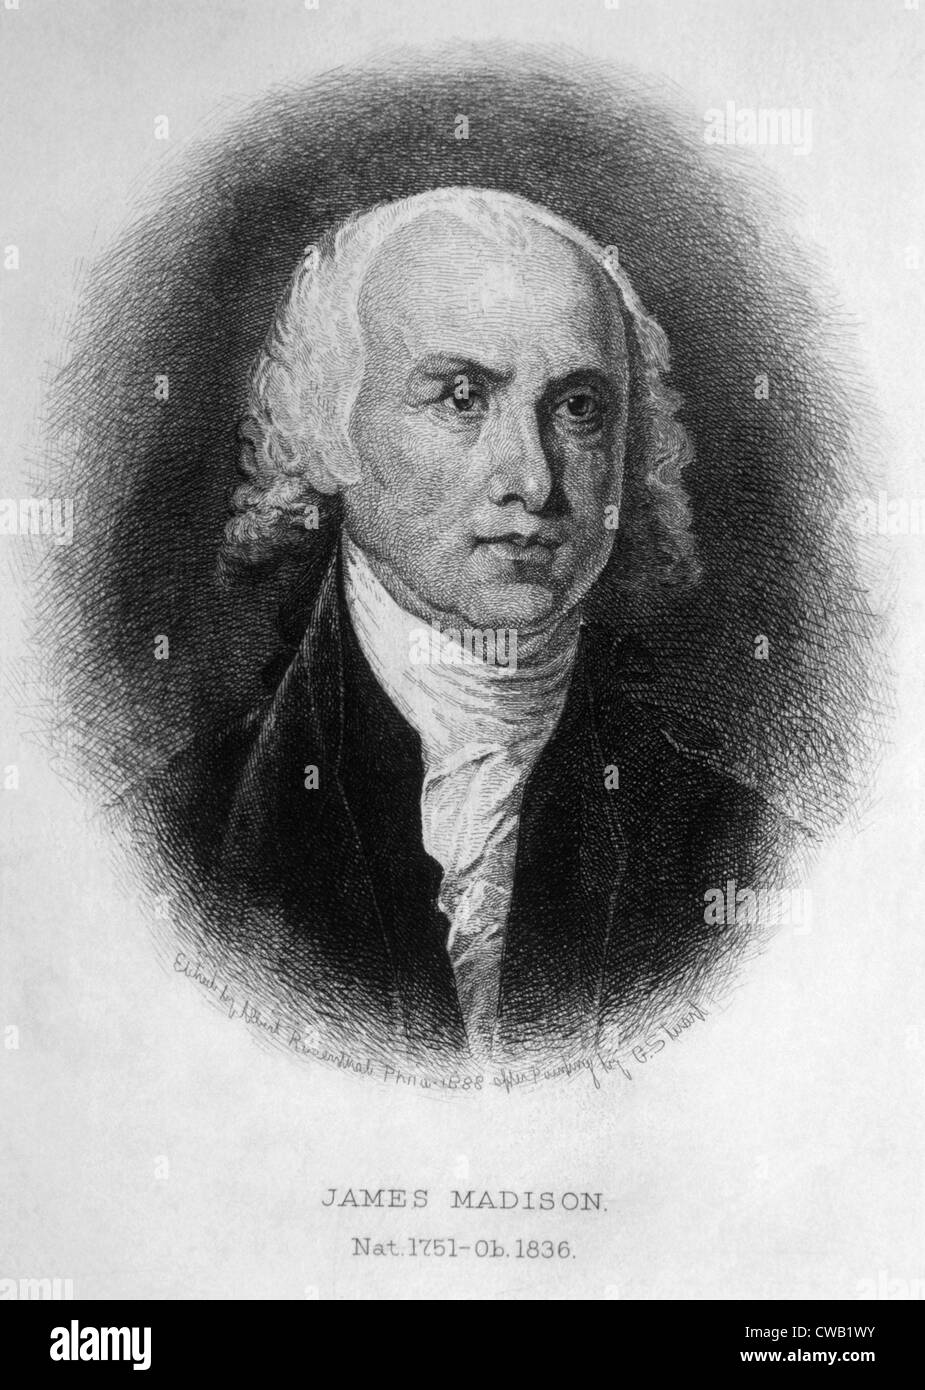 James Madison (1751-1836), U.S. President (1809-1817), engraving 1889 - Stock Image